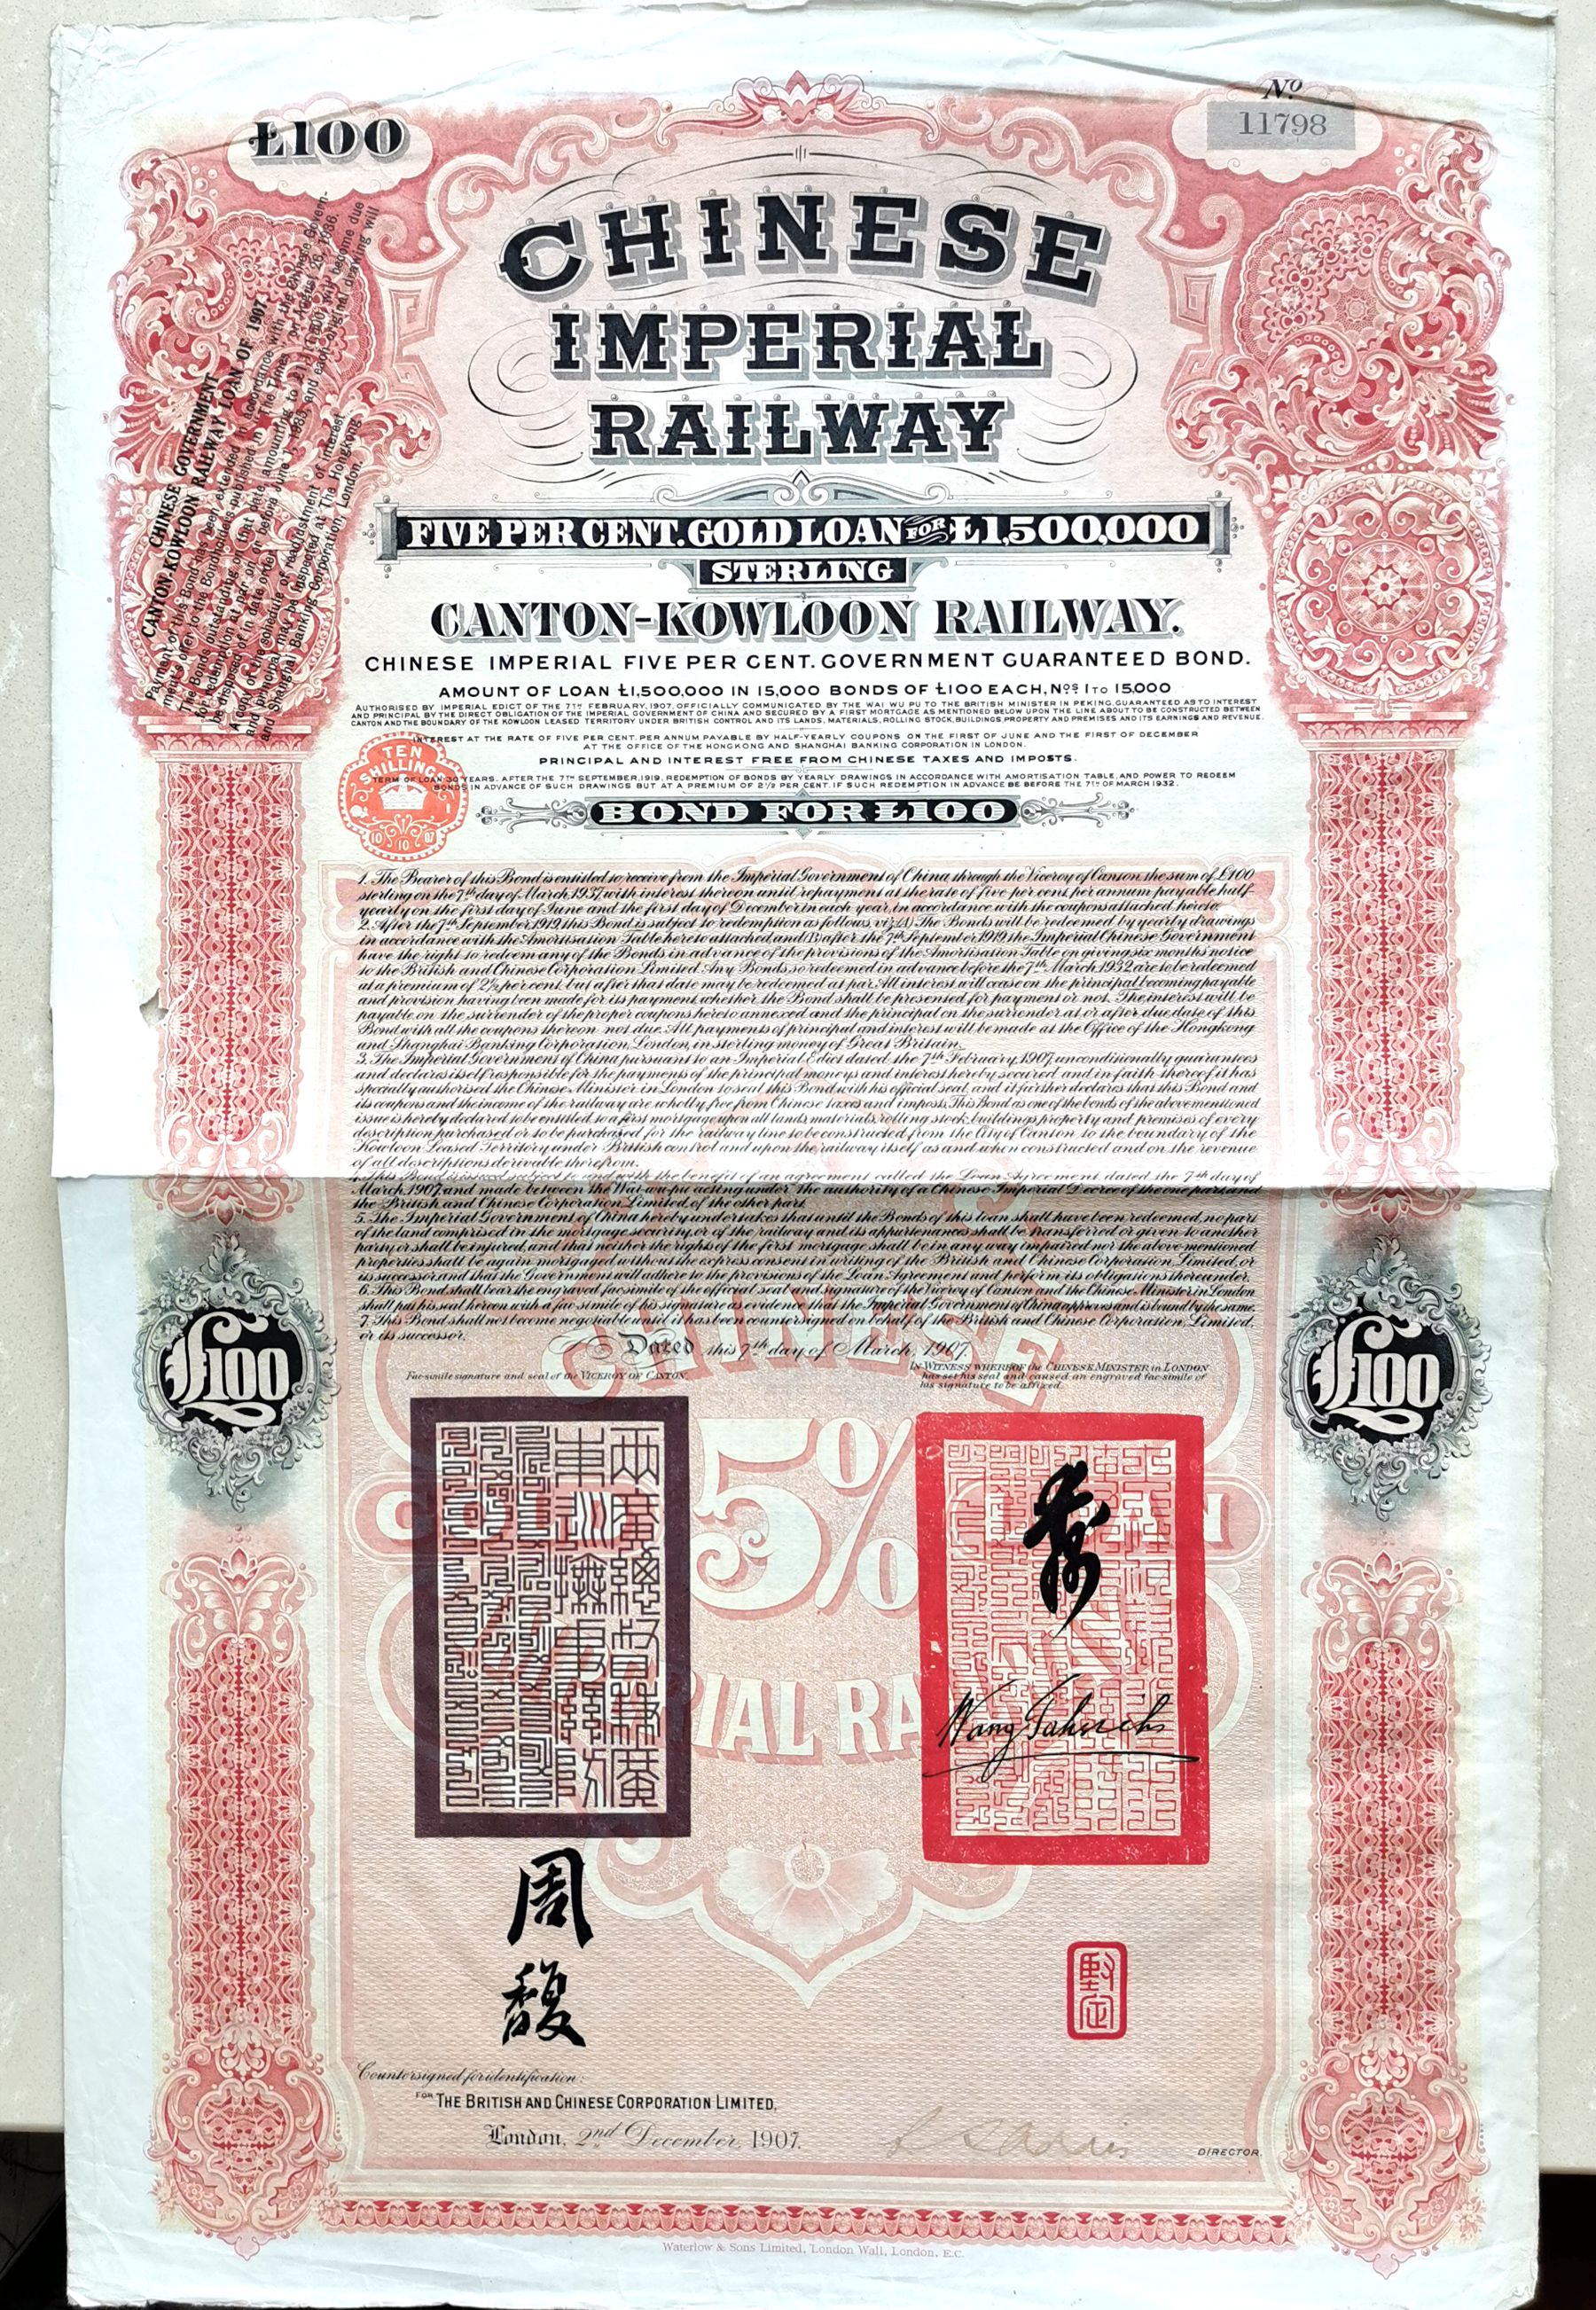 B9606, China Imperial 5% Canton-Kowloon Railway Loan, 100 Pound Sterlings 1907